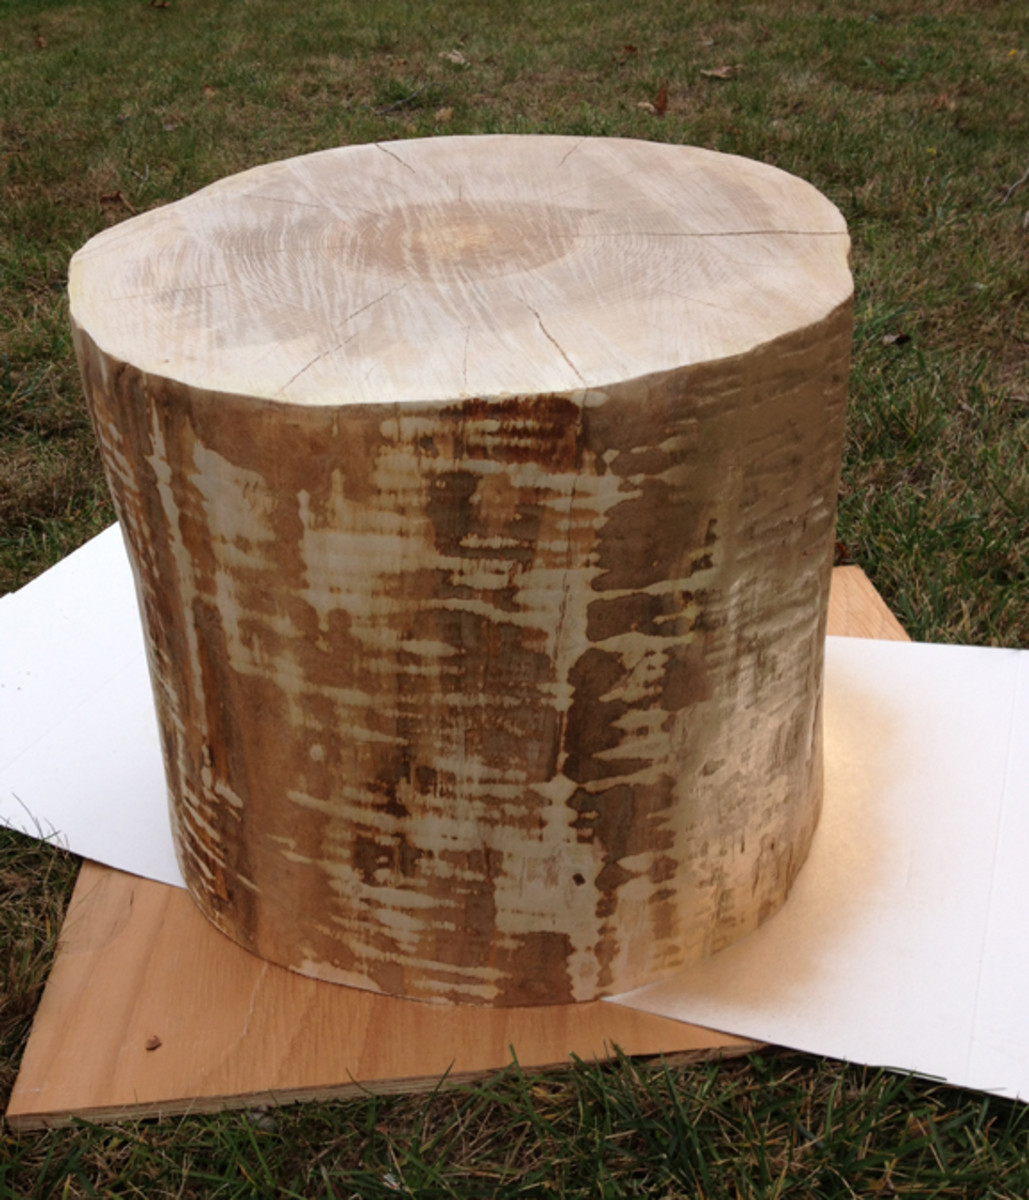 The lines that you see on the stump are not from sanding but are the natural striations in the tree.